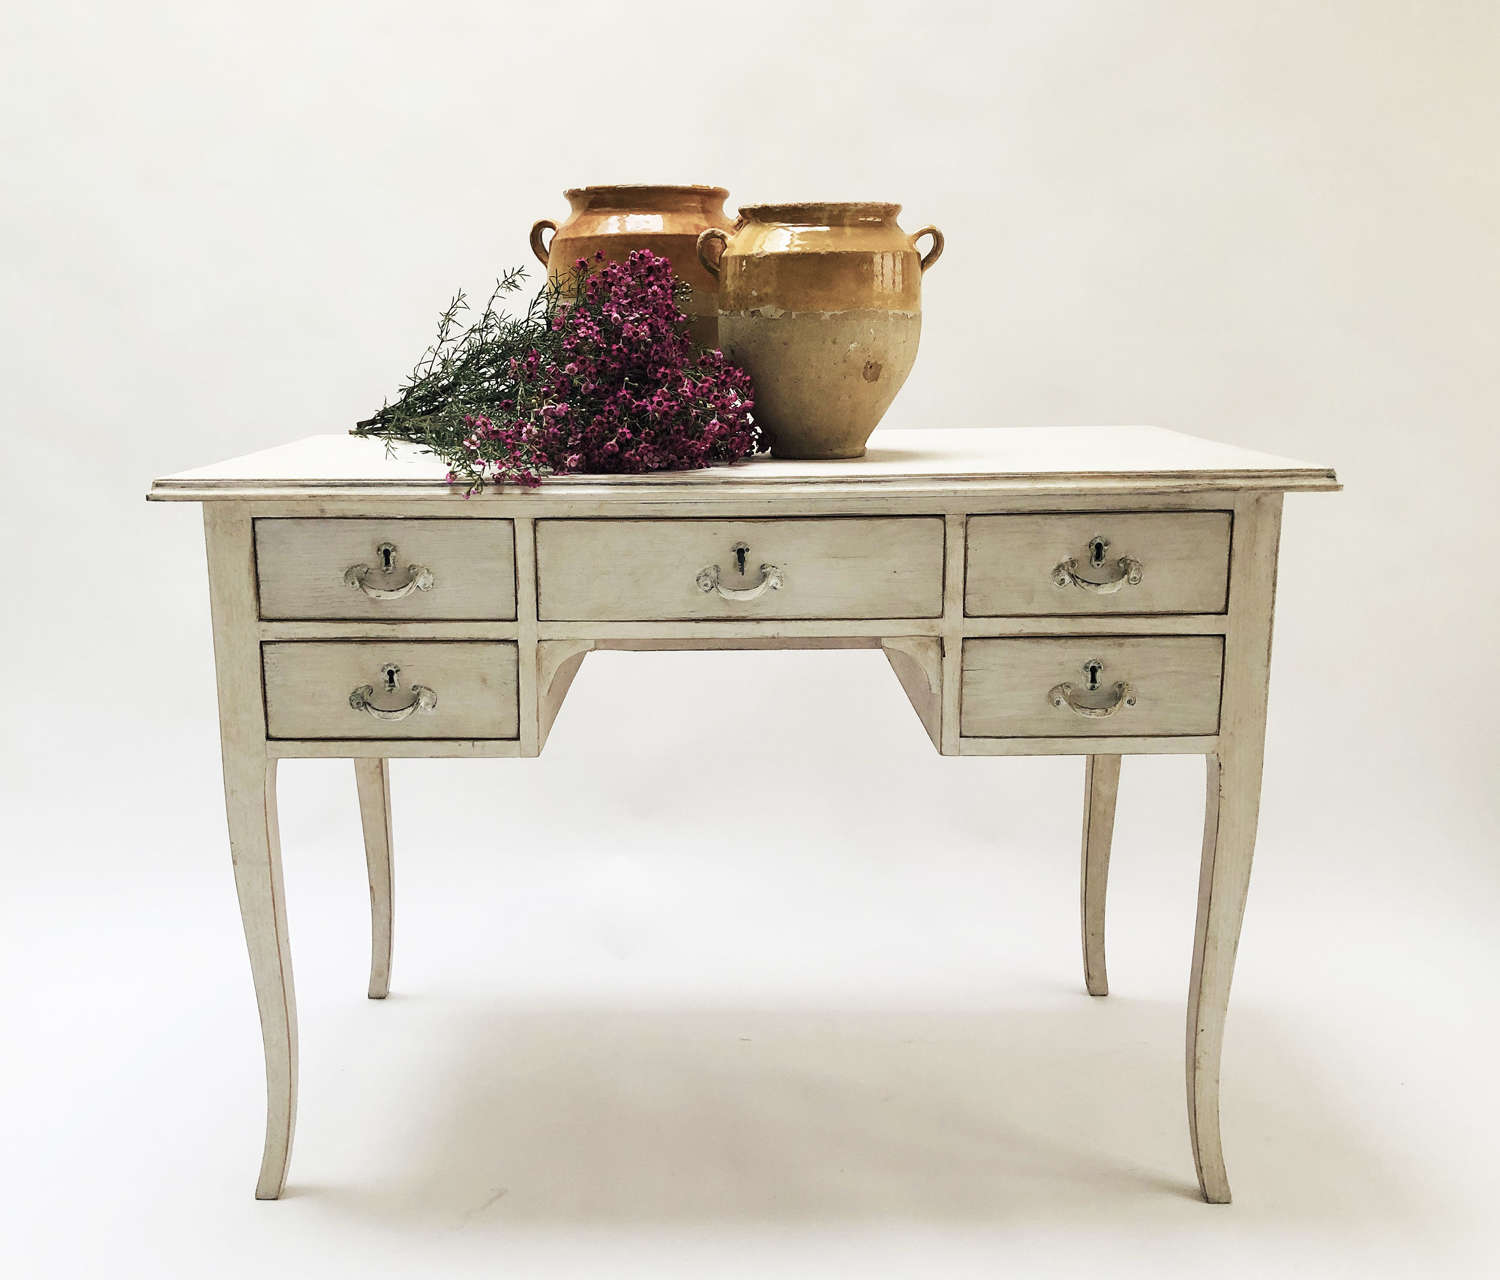 Swedish 20th c Desk with lime-wash finish - Circa 1950